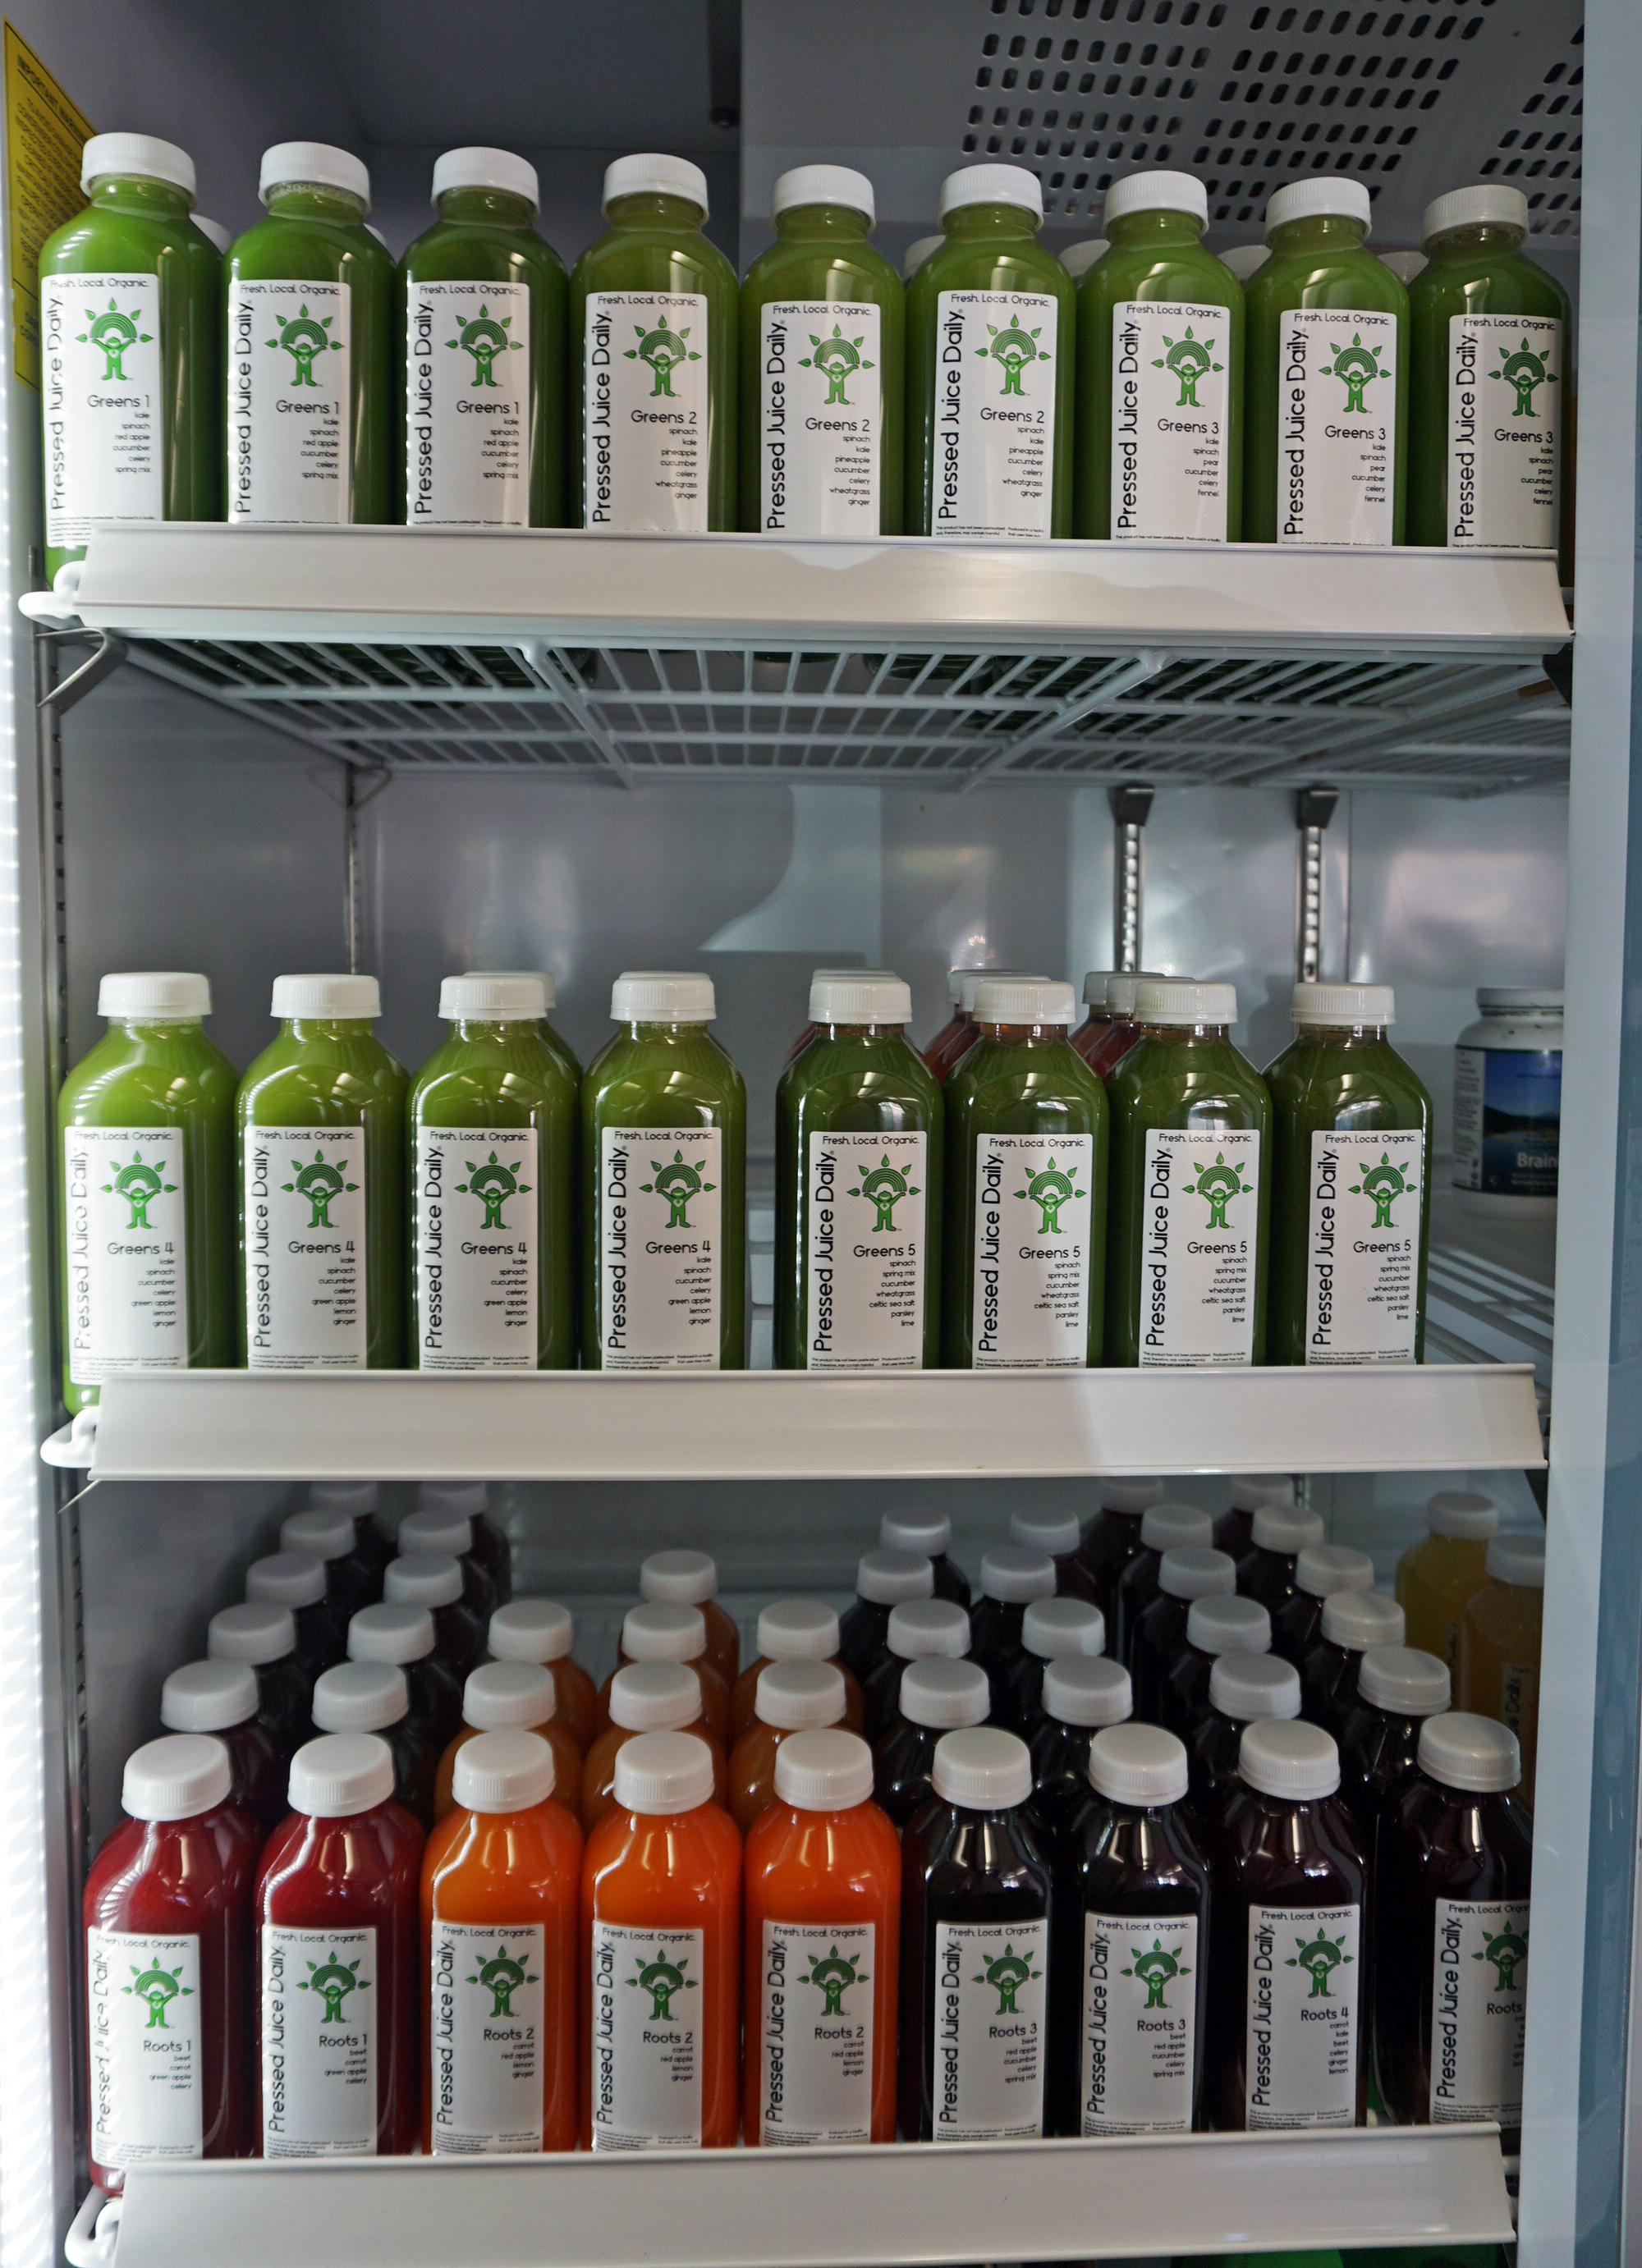 Juice startup uncaps expansion plan businessden pressed juice daily sells individual bottles and also offers packages based on health goals photo malvernweather Choice Image